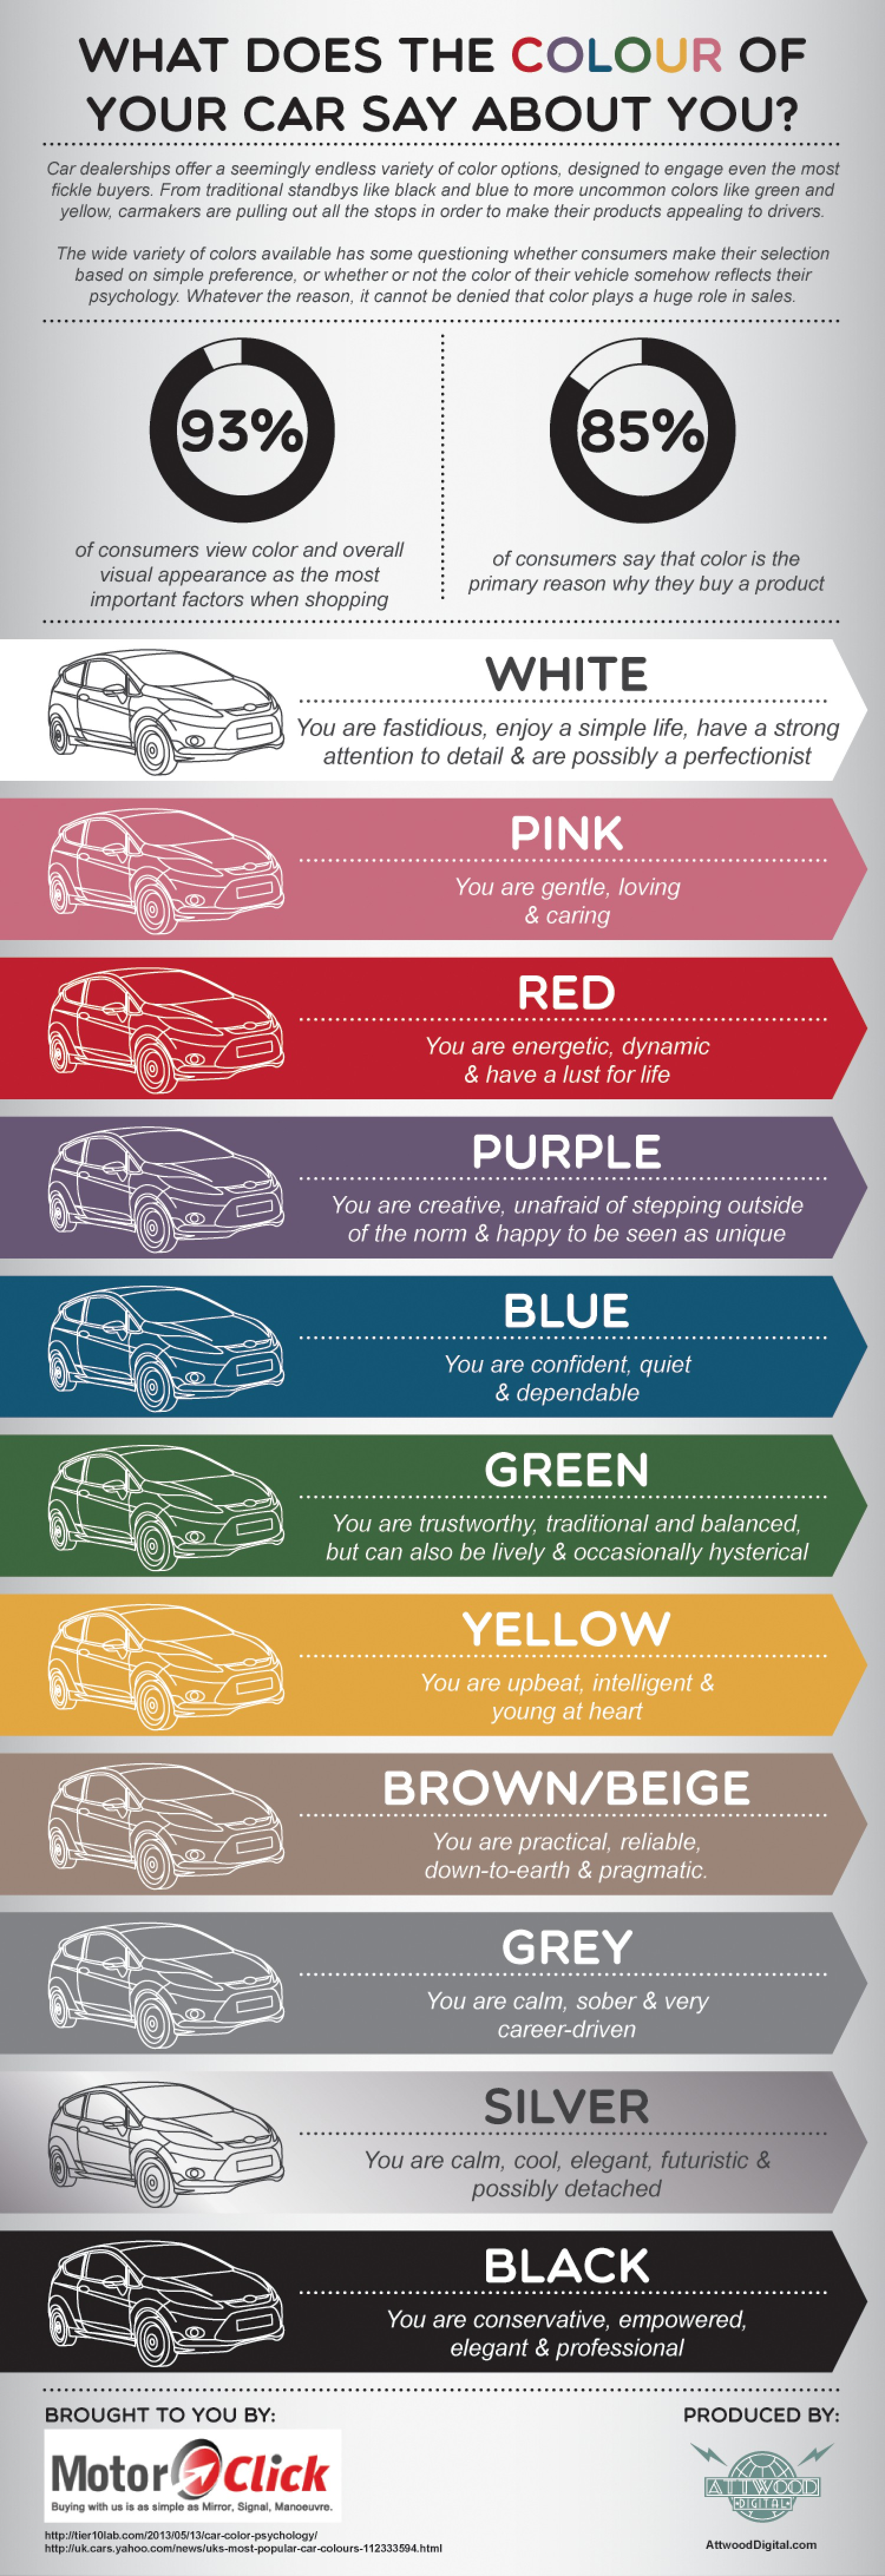 what-does-the-colour-of-your-car-say-about-you_5298c60c5b411_w1500_png.jpg